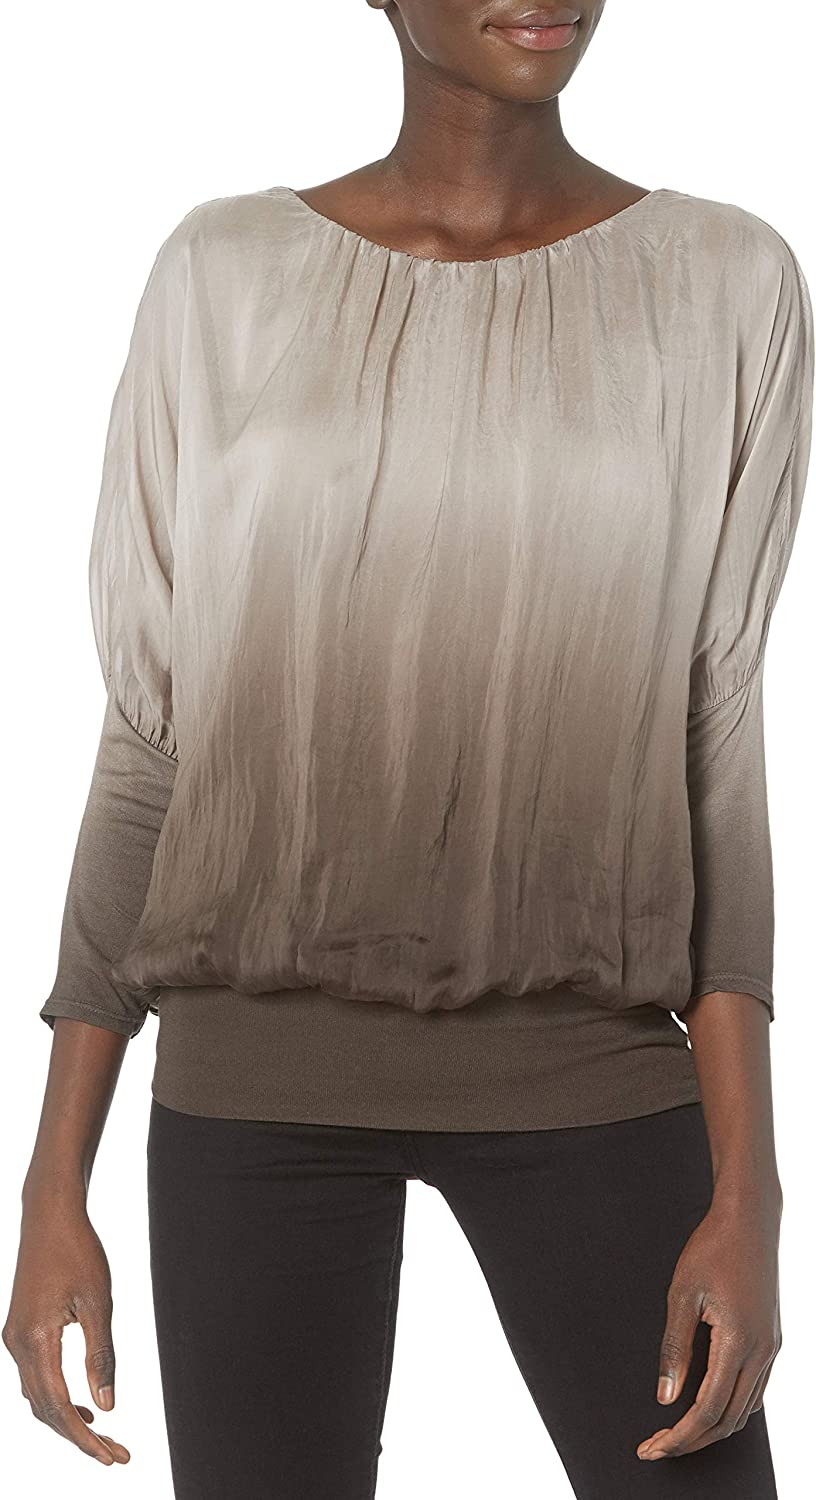 M Made in Italy Women's Ombre Discount mail order 3 Max 79% OFF with Sleeves 4 Top